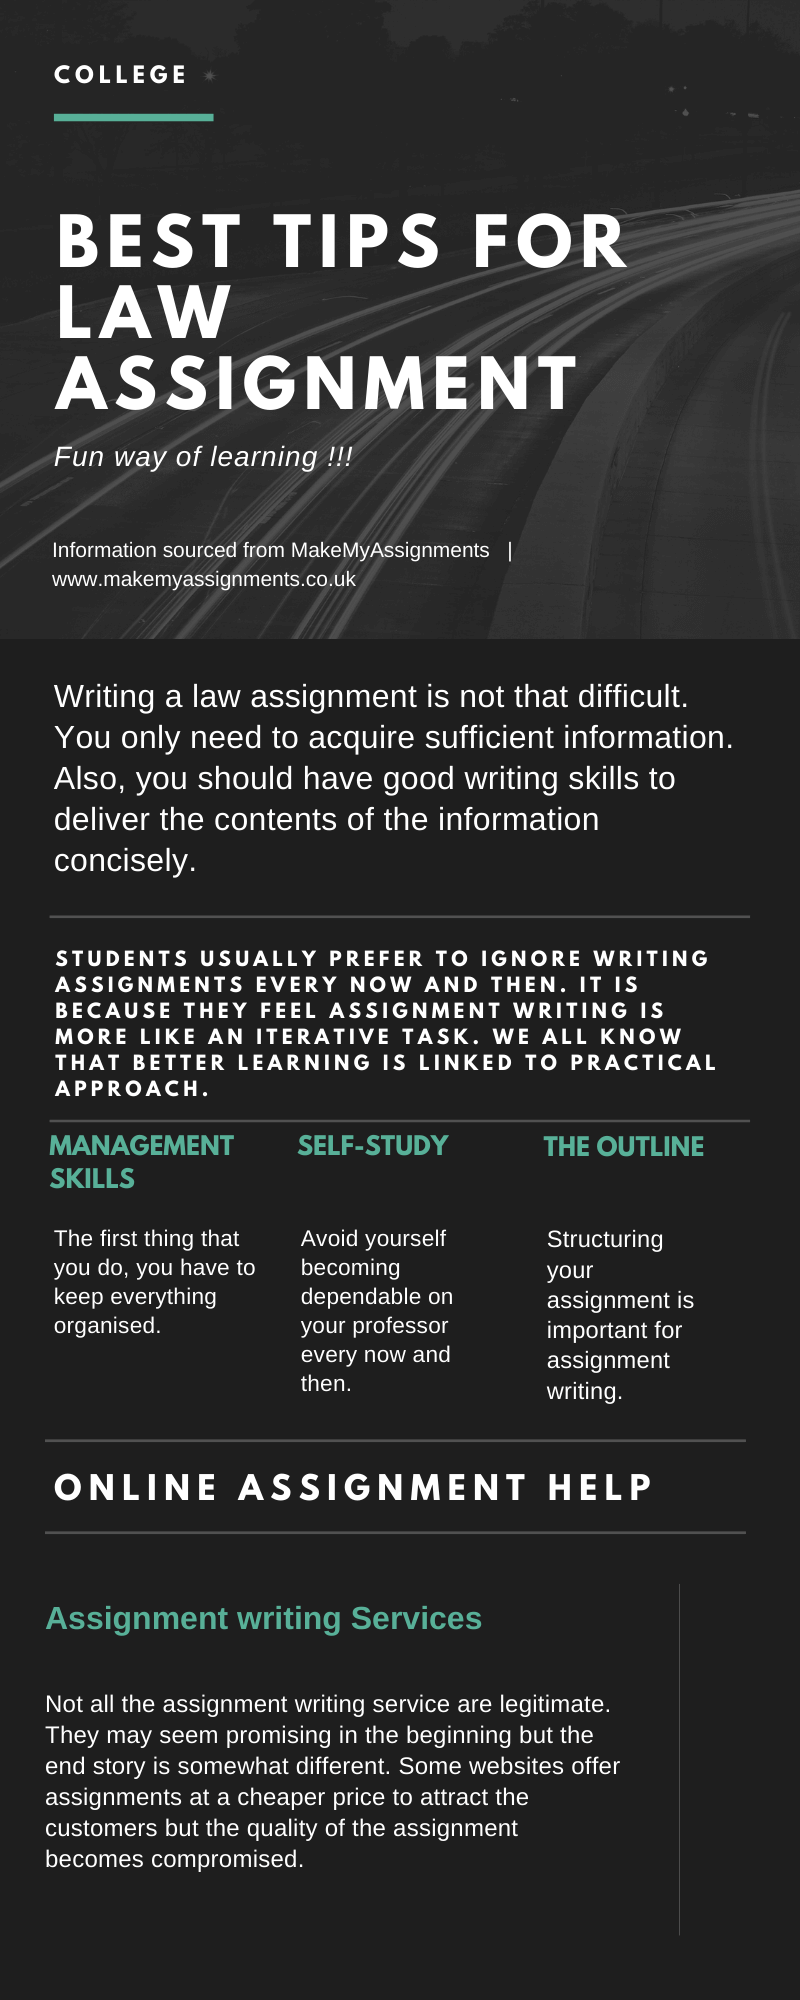 Best Tips for Law Assignment